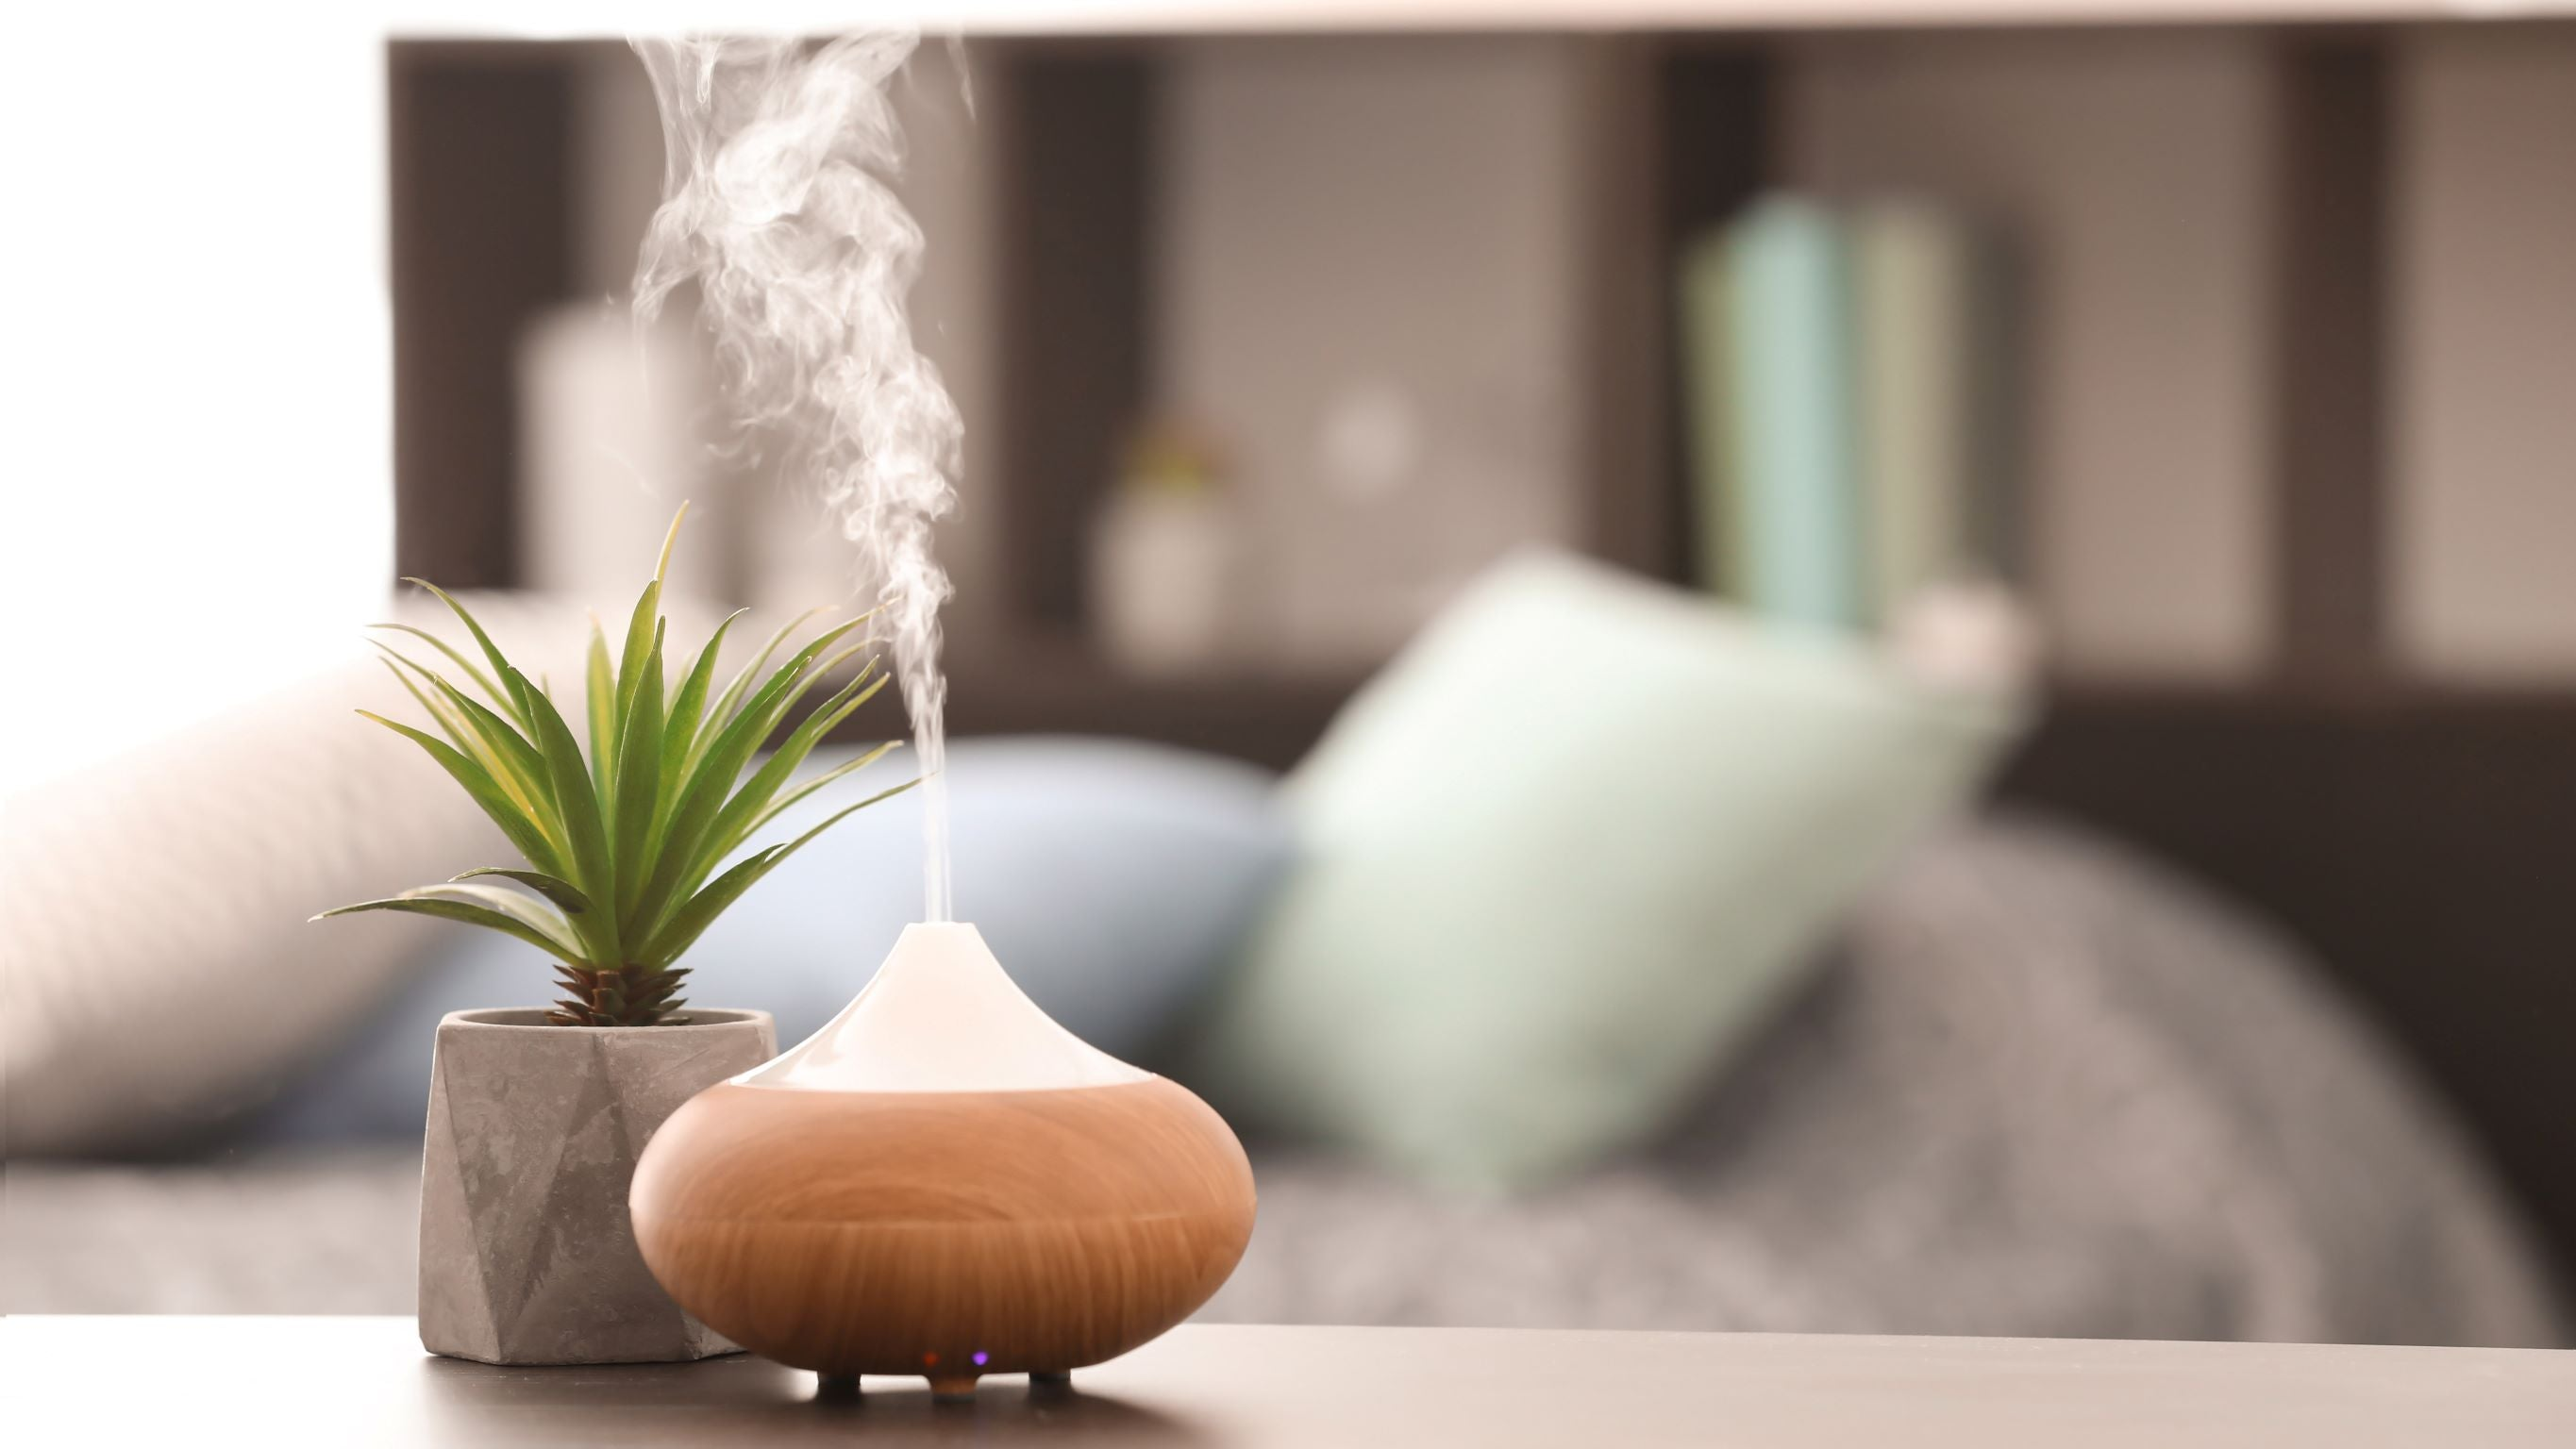 aromatherapy diffuser and plant